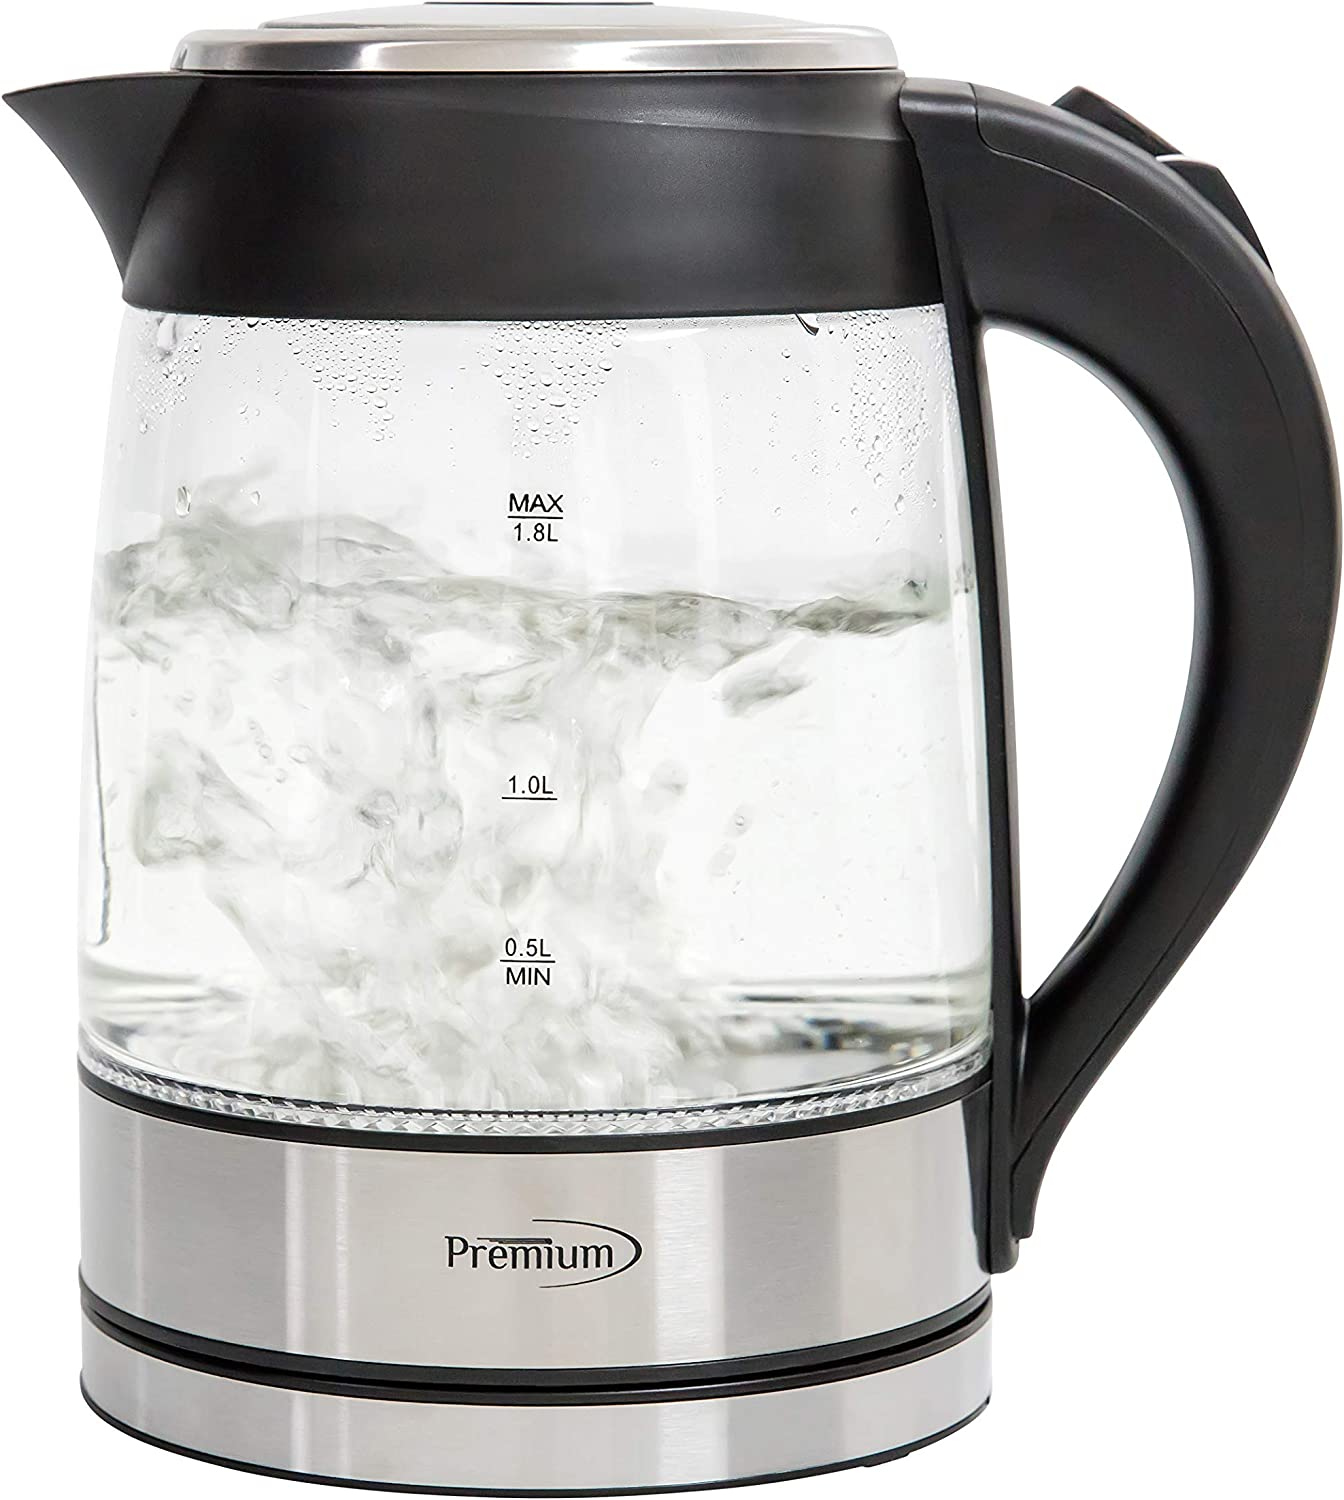 PREMIUM PTK5190 2 Quart Glass Electric Tea Kettle